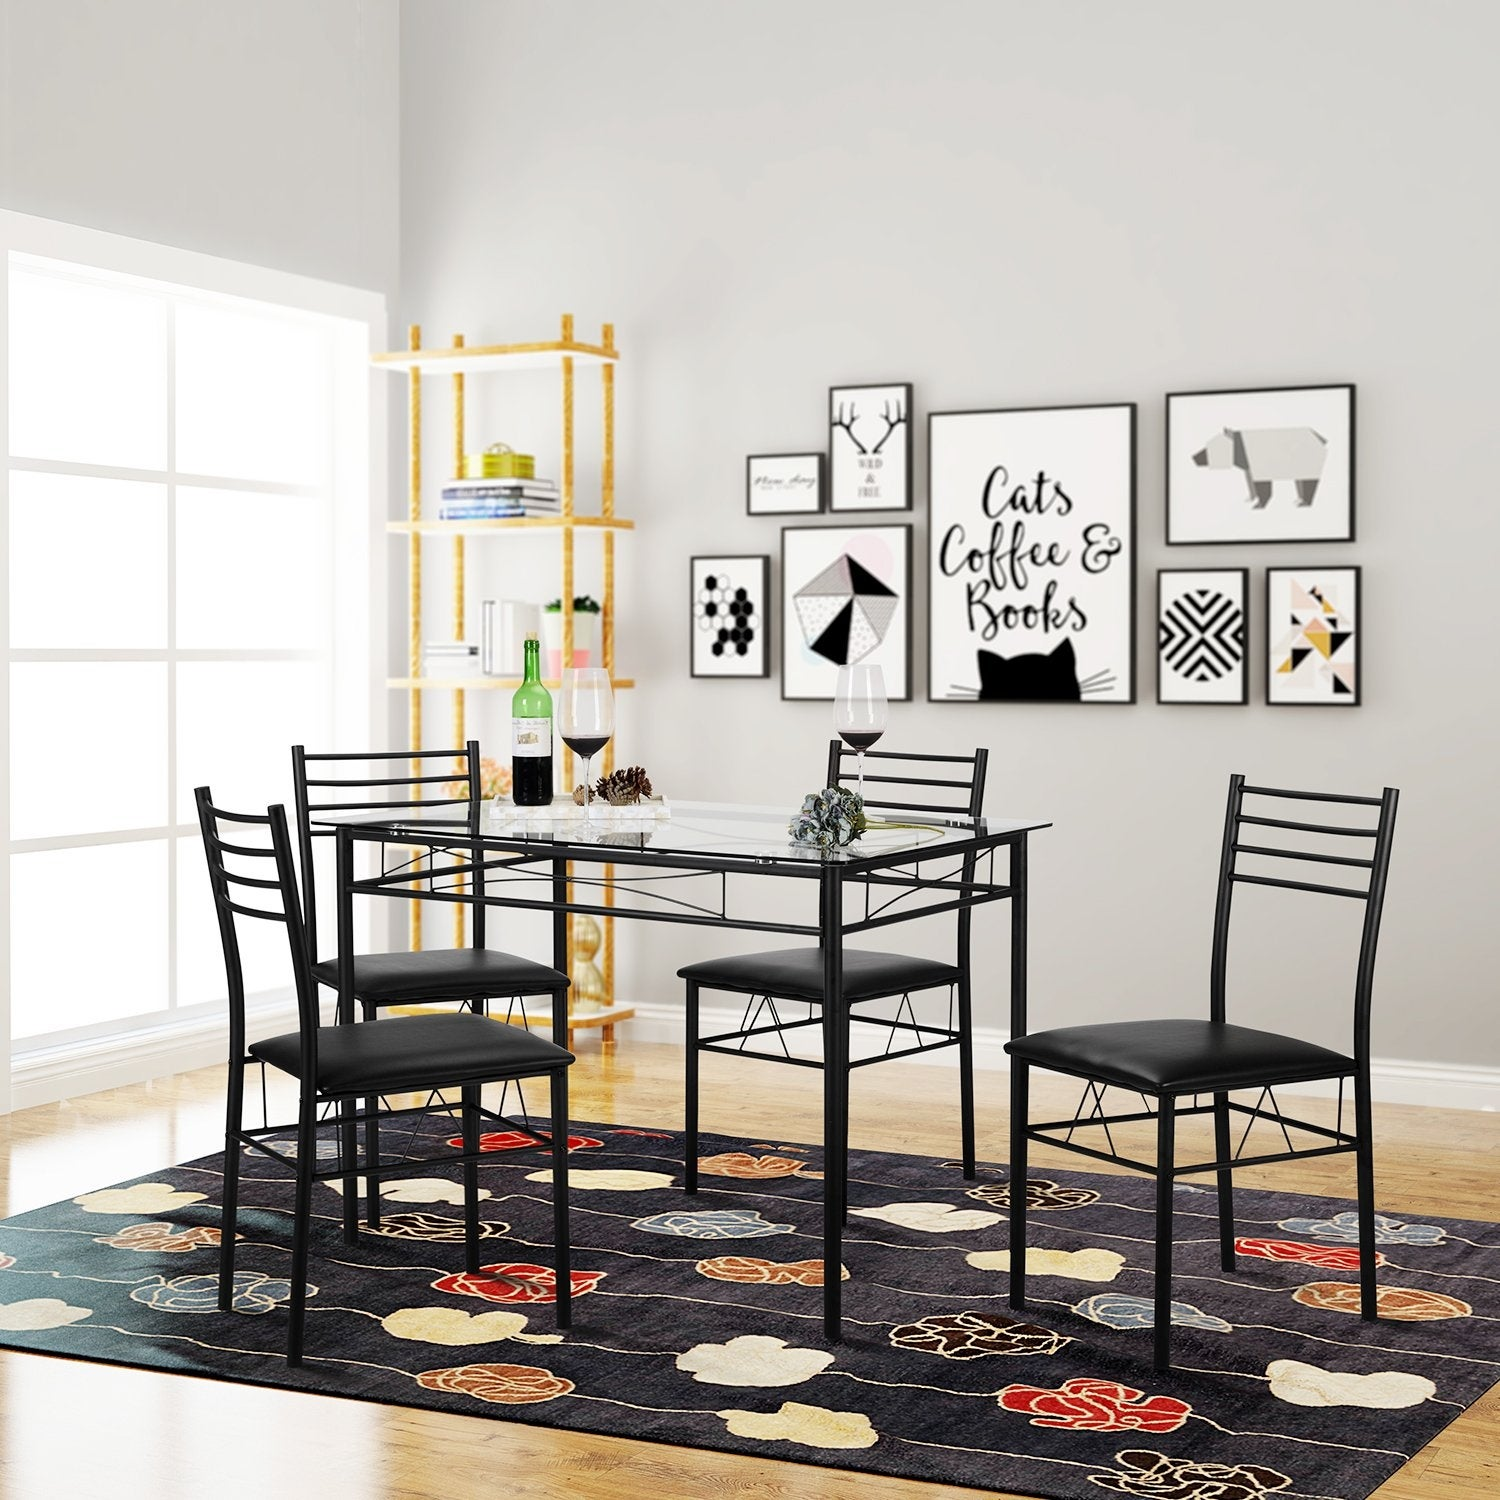 VECELO Kitchen Dining Table Sets,Tempered Glass Table With 4 Chairs